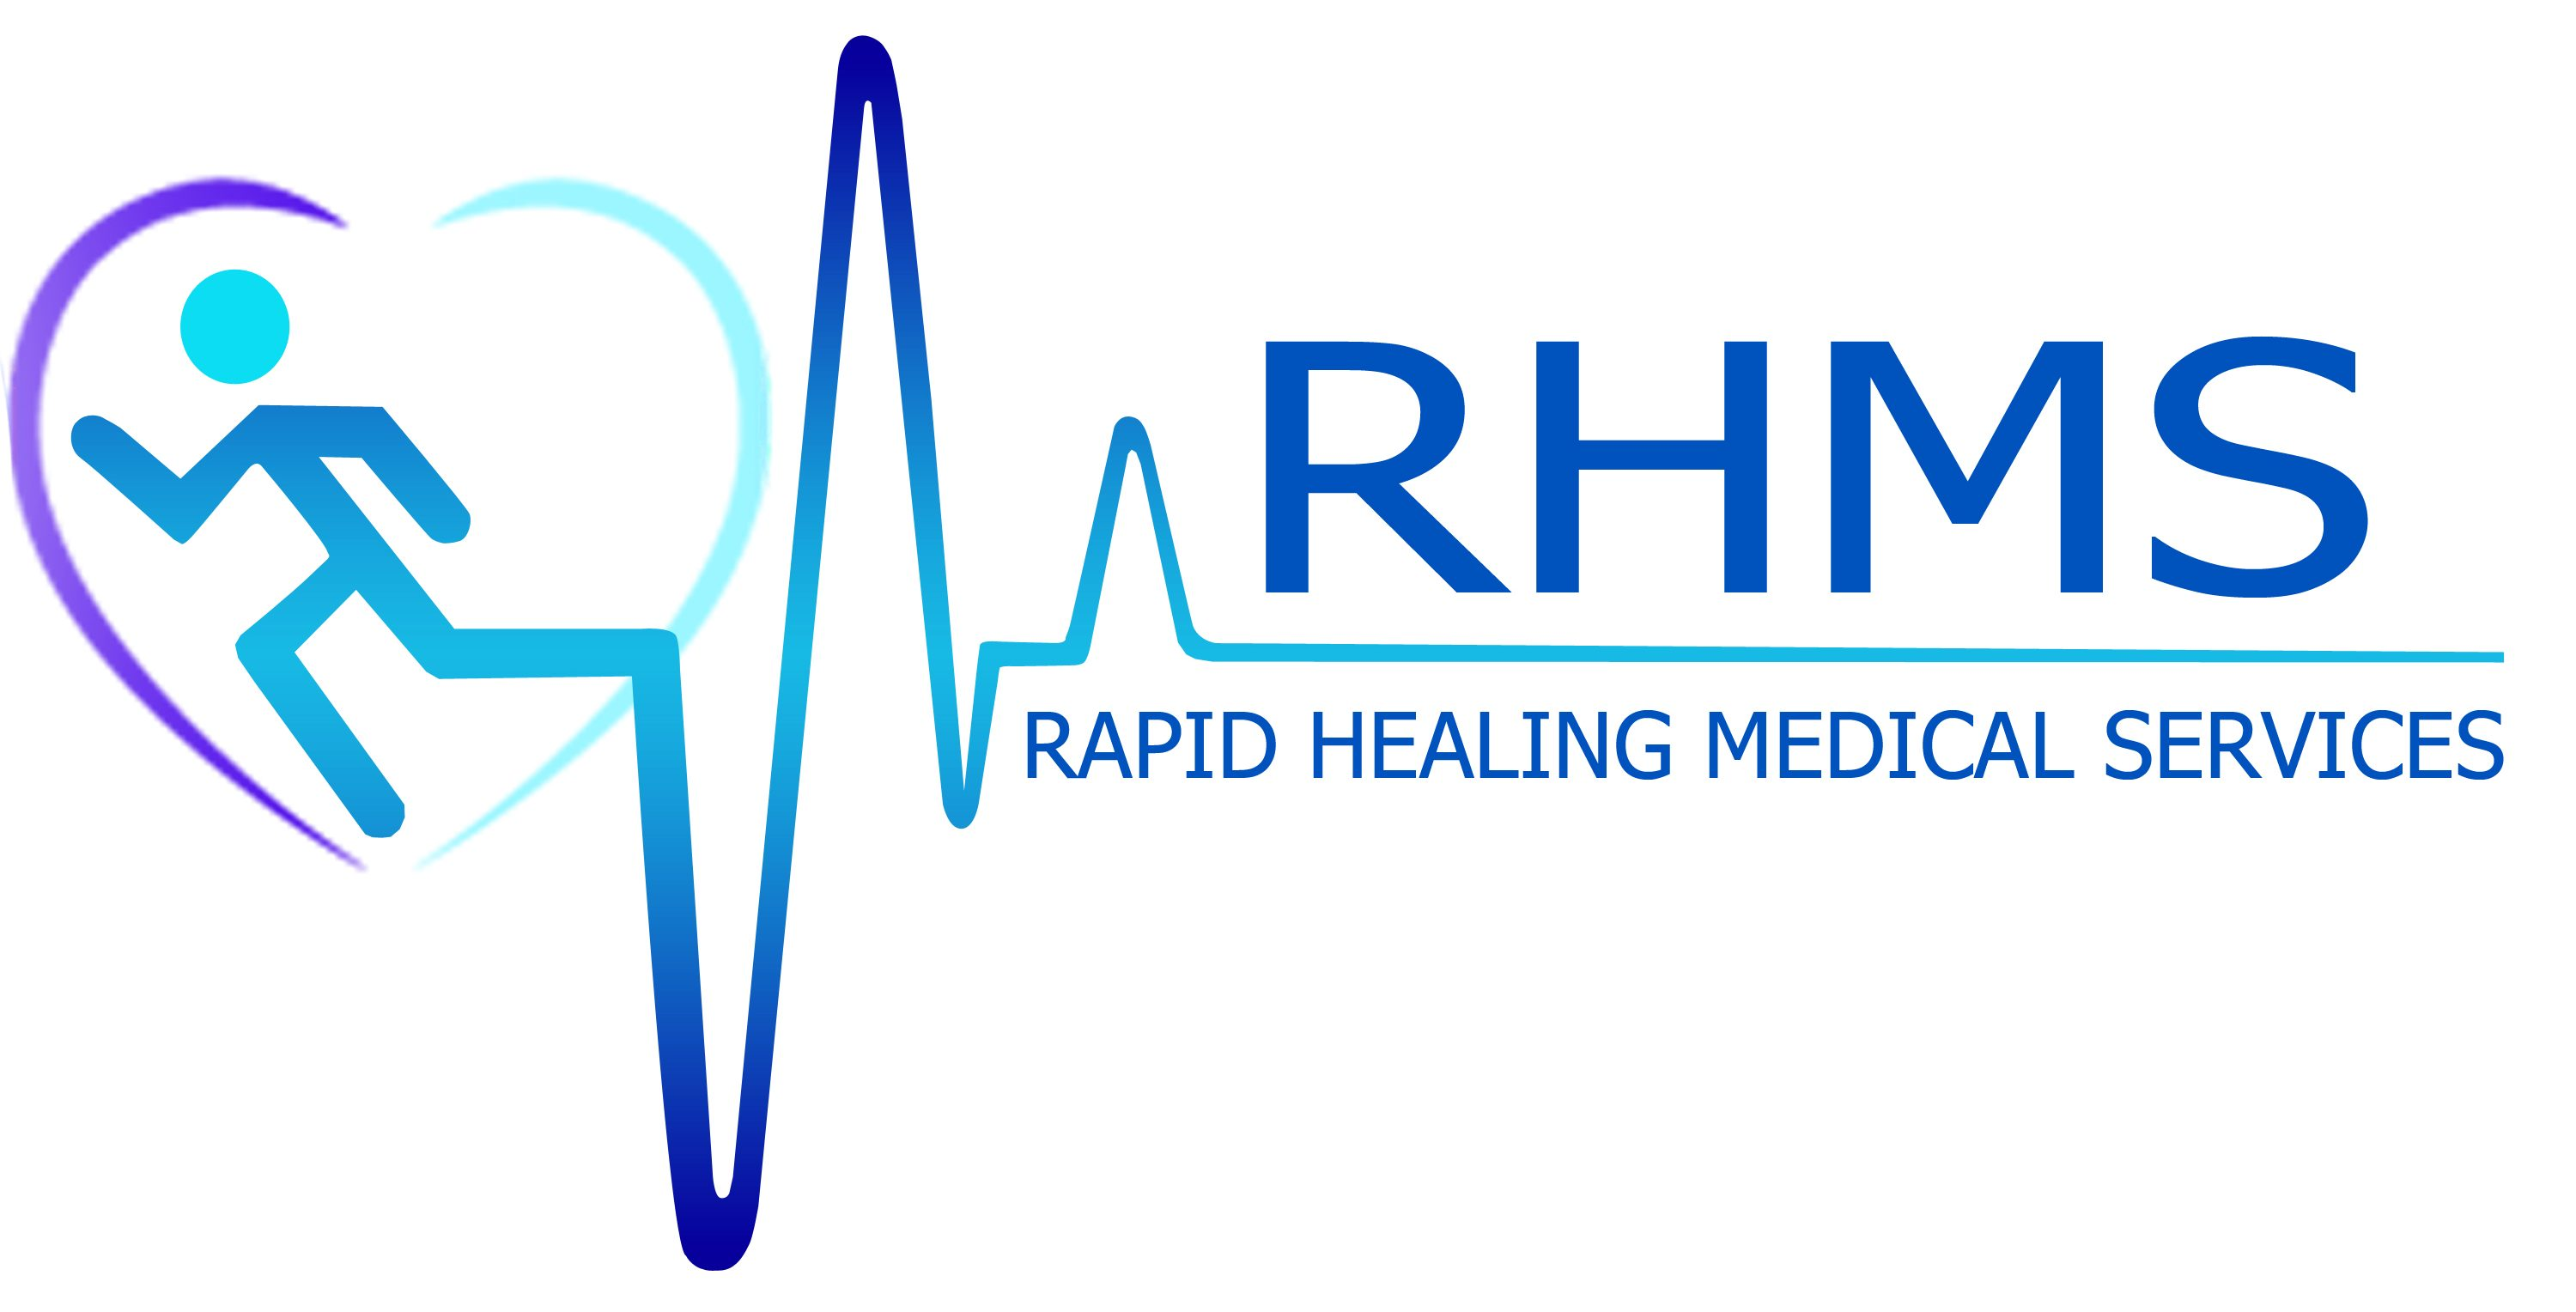 Rapid Healing Medical Services